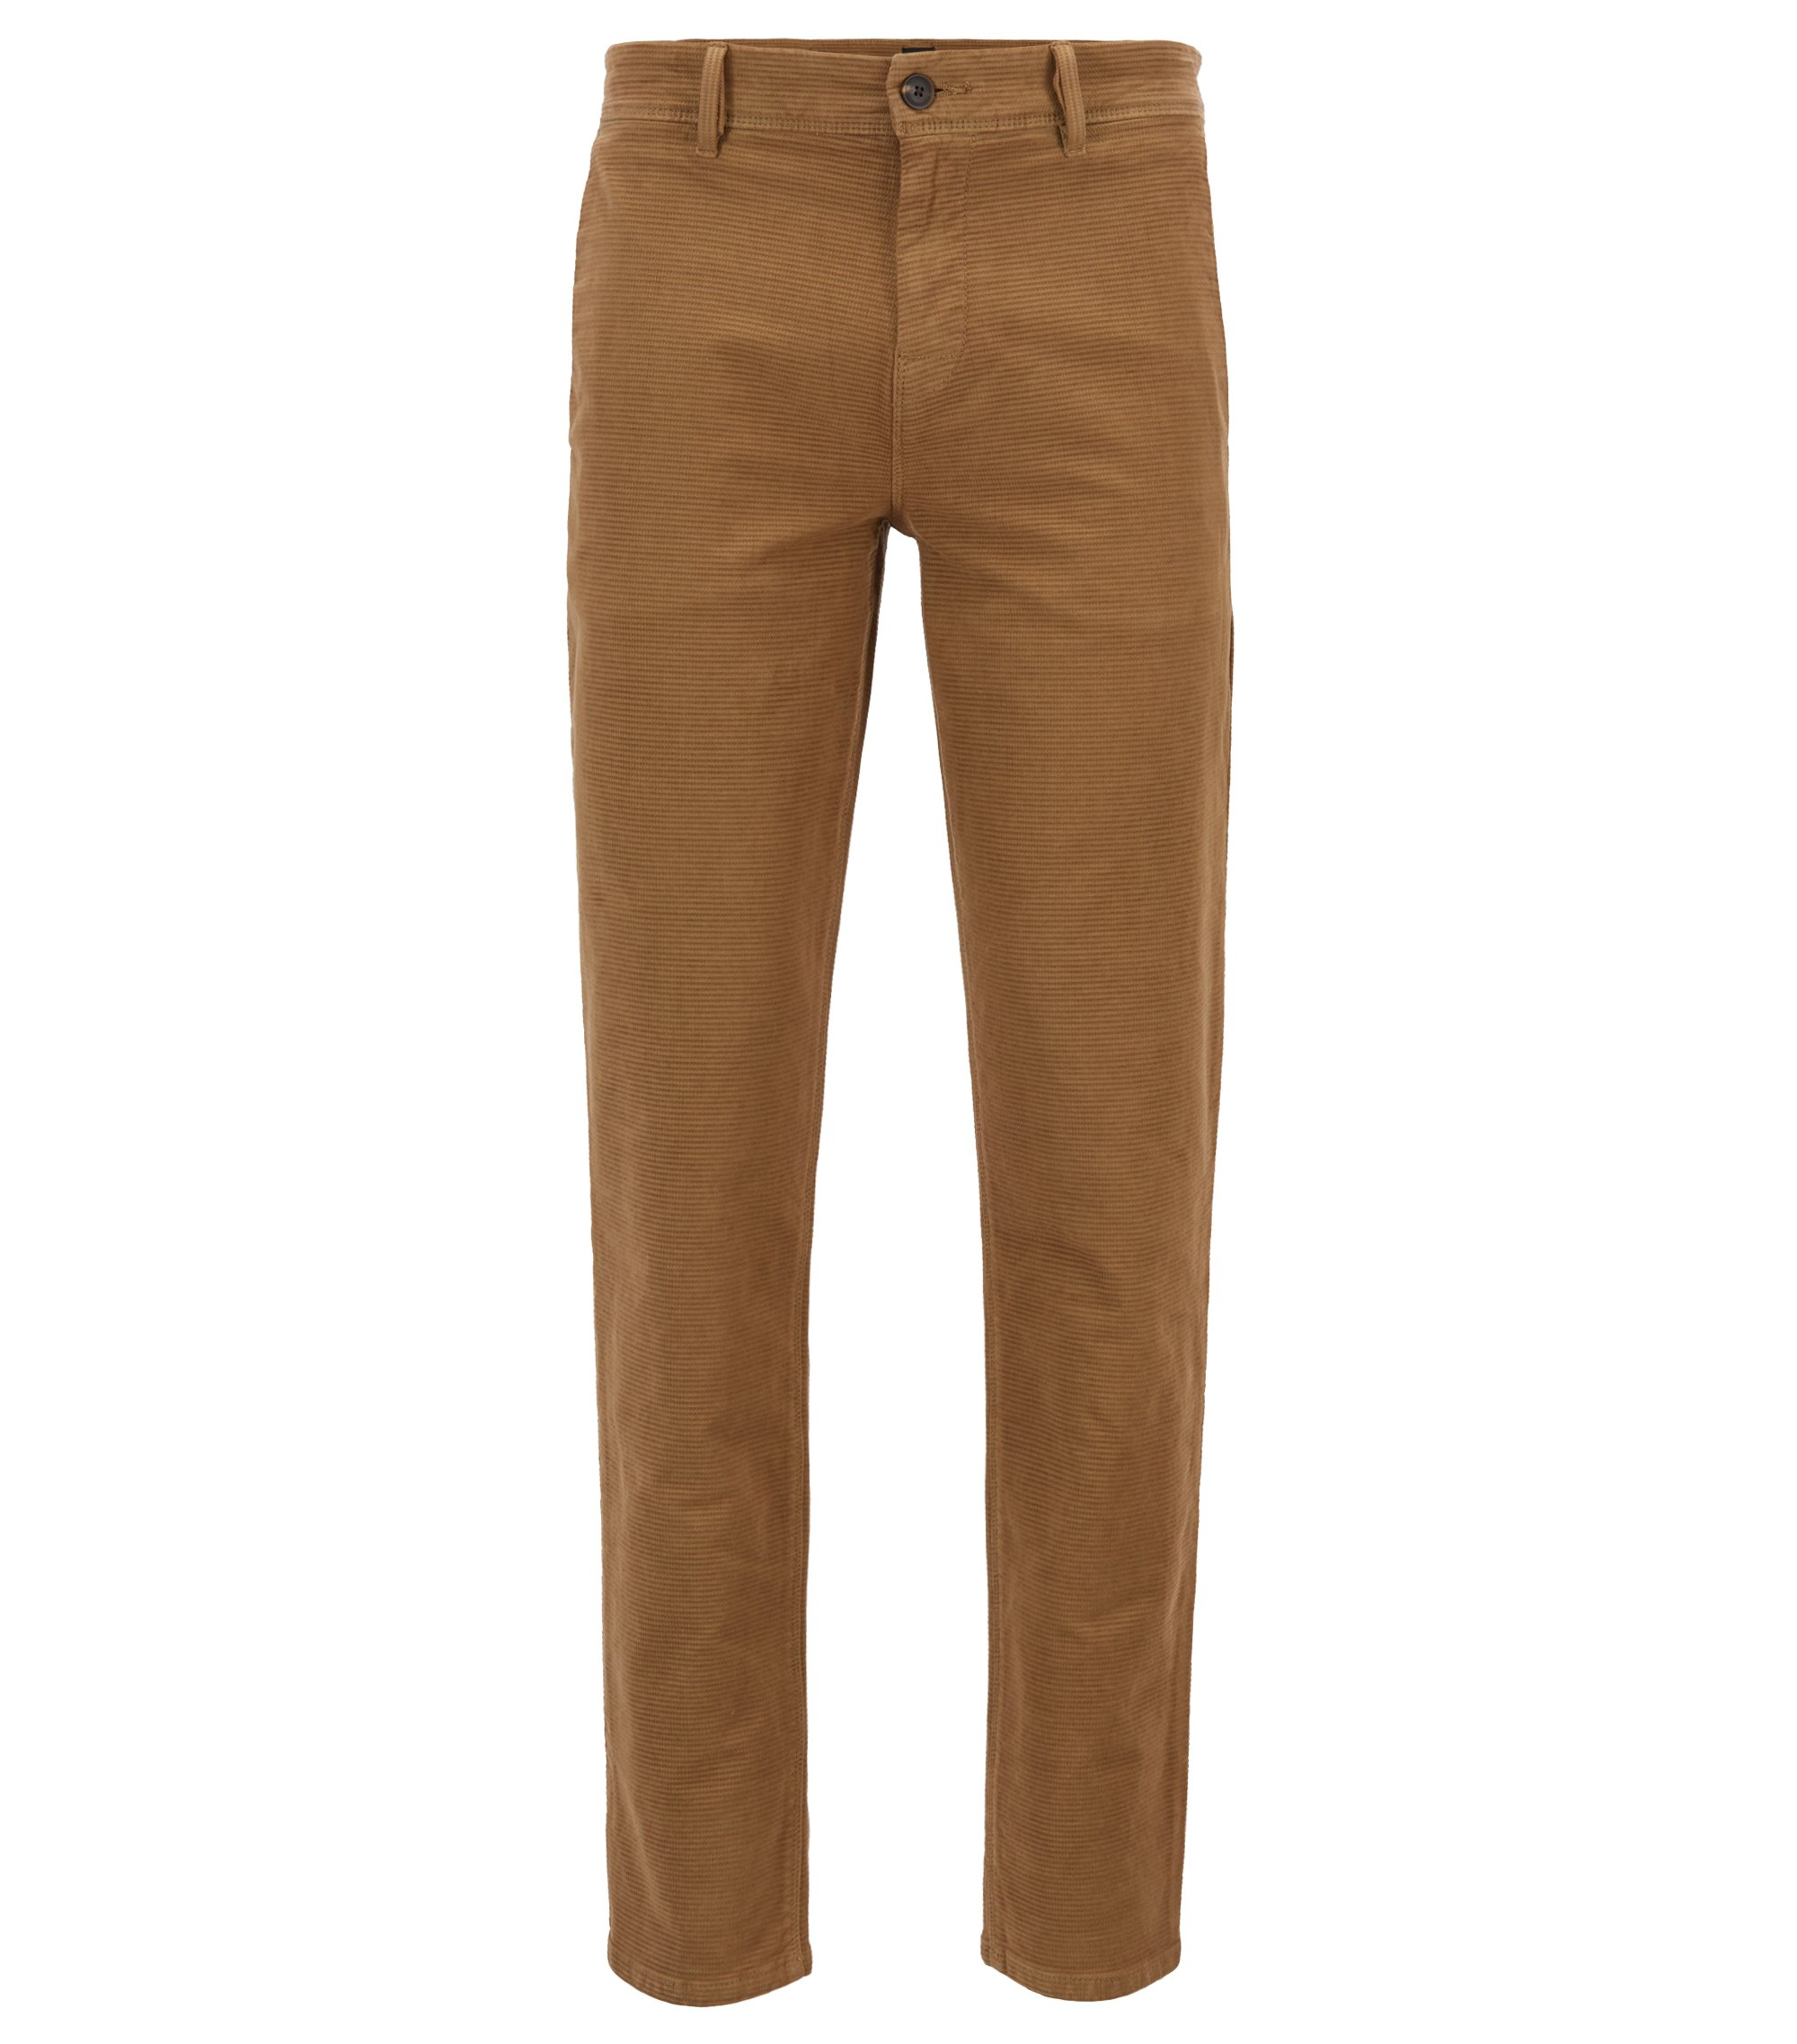 Tapered-fit trousers in structured stretch cotton, Beige